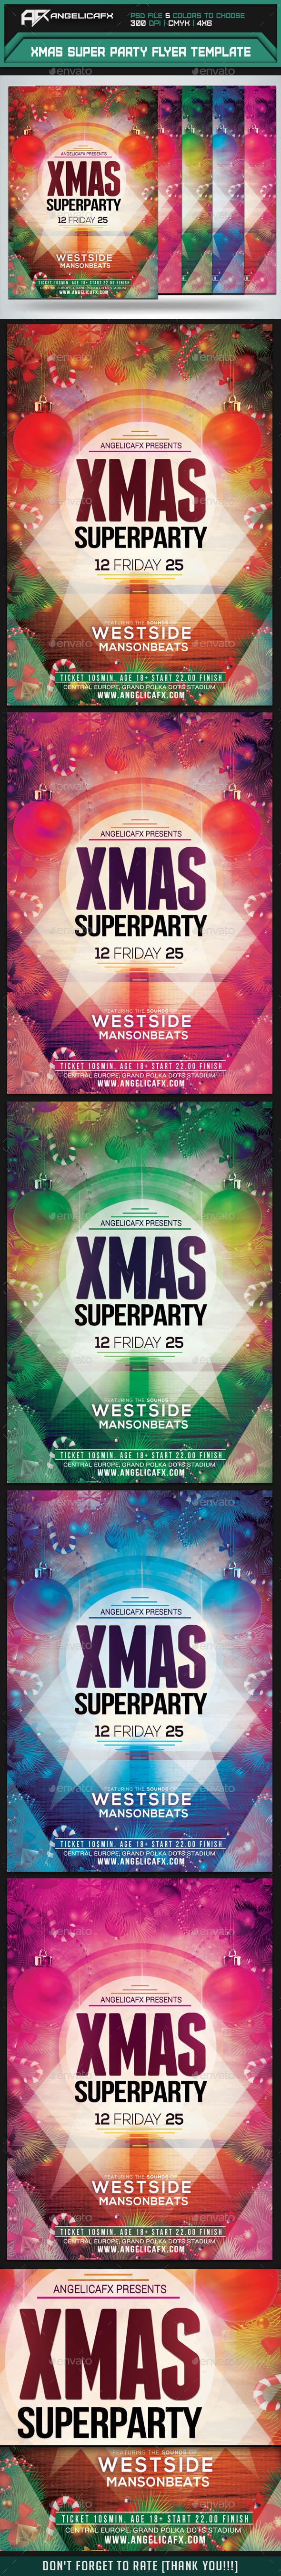 Xmas Super Party Flyer Template - Flyers Print Templates